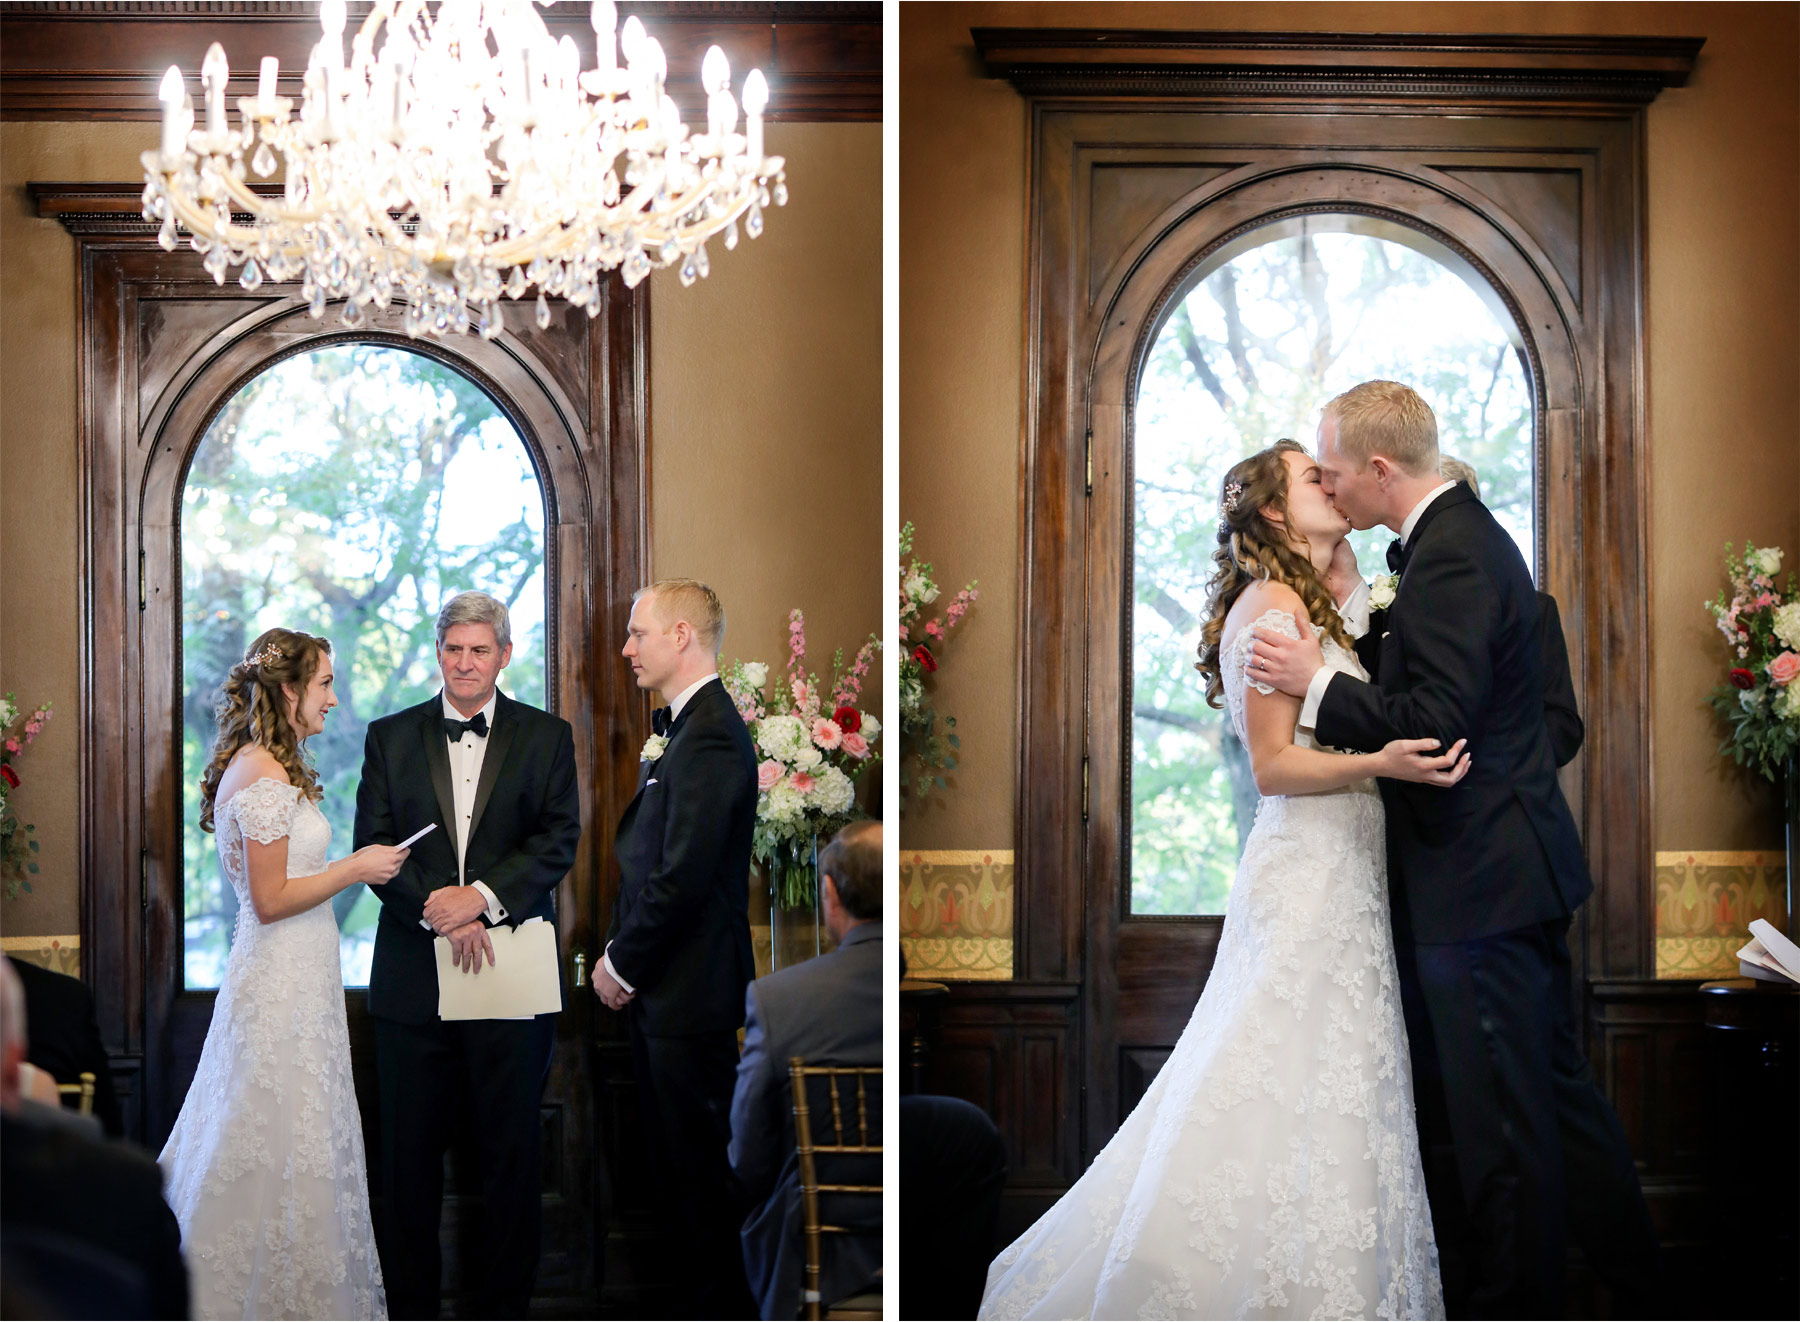 06-Minneapolis-Minnesota-Wedding-Photography-by-Vick-Photography-Semple-Mansion-Ceremony-Mansion-Danielle-and-Chance.jpg